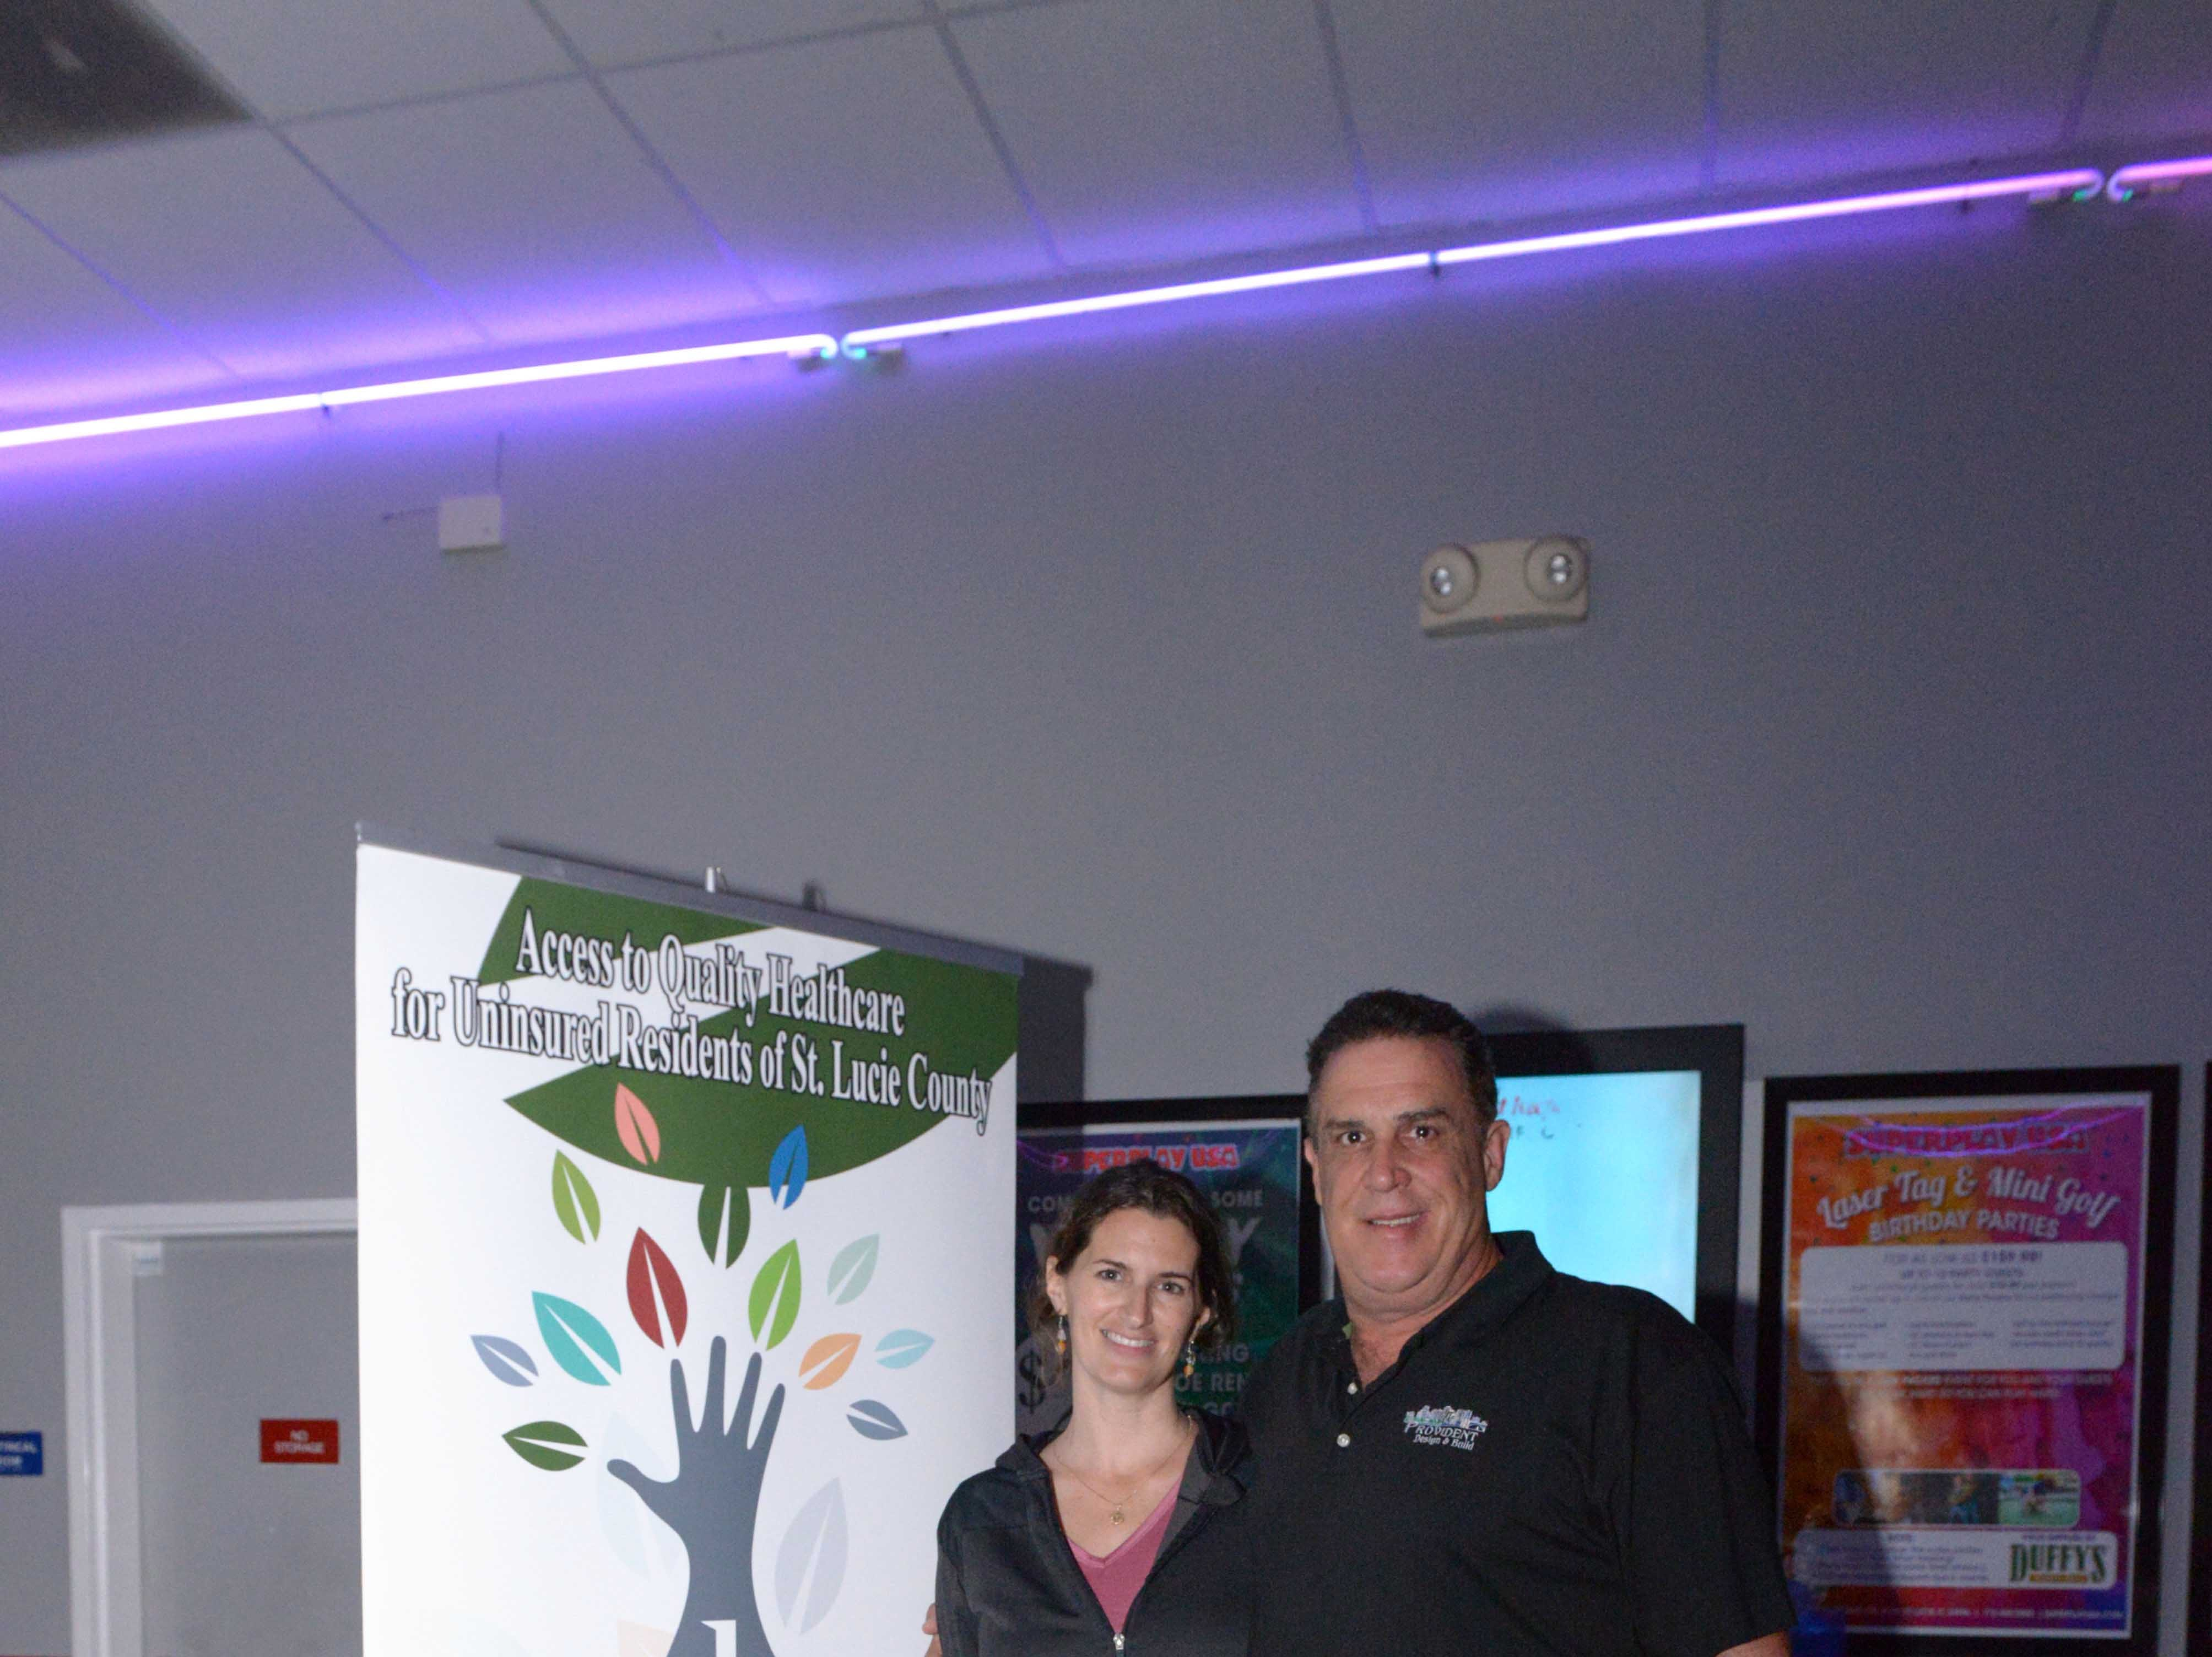 Jessica and John Gaffney attend the Cosmic Family Fun event  to support HANDSof St. Lucie County.